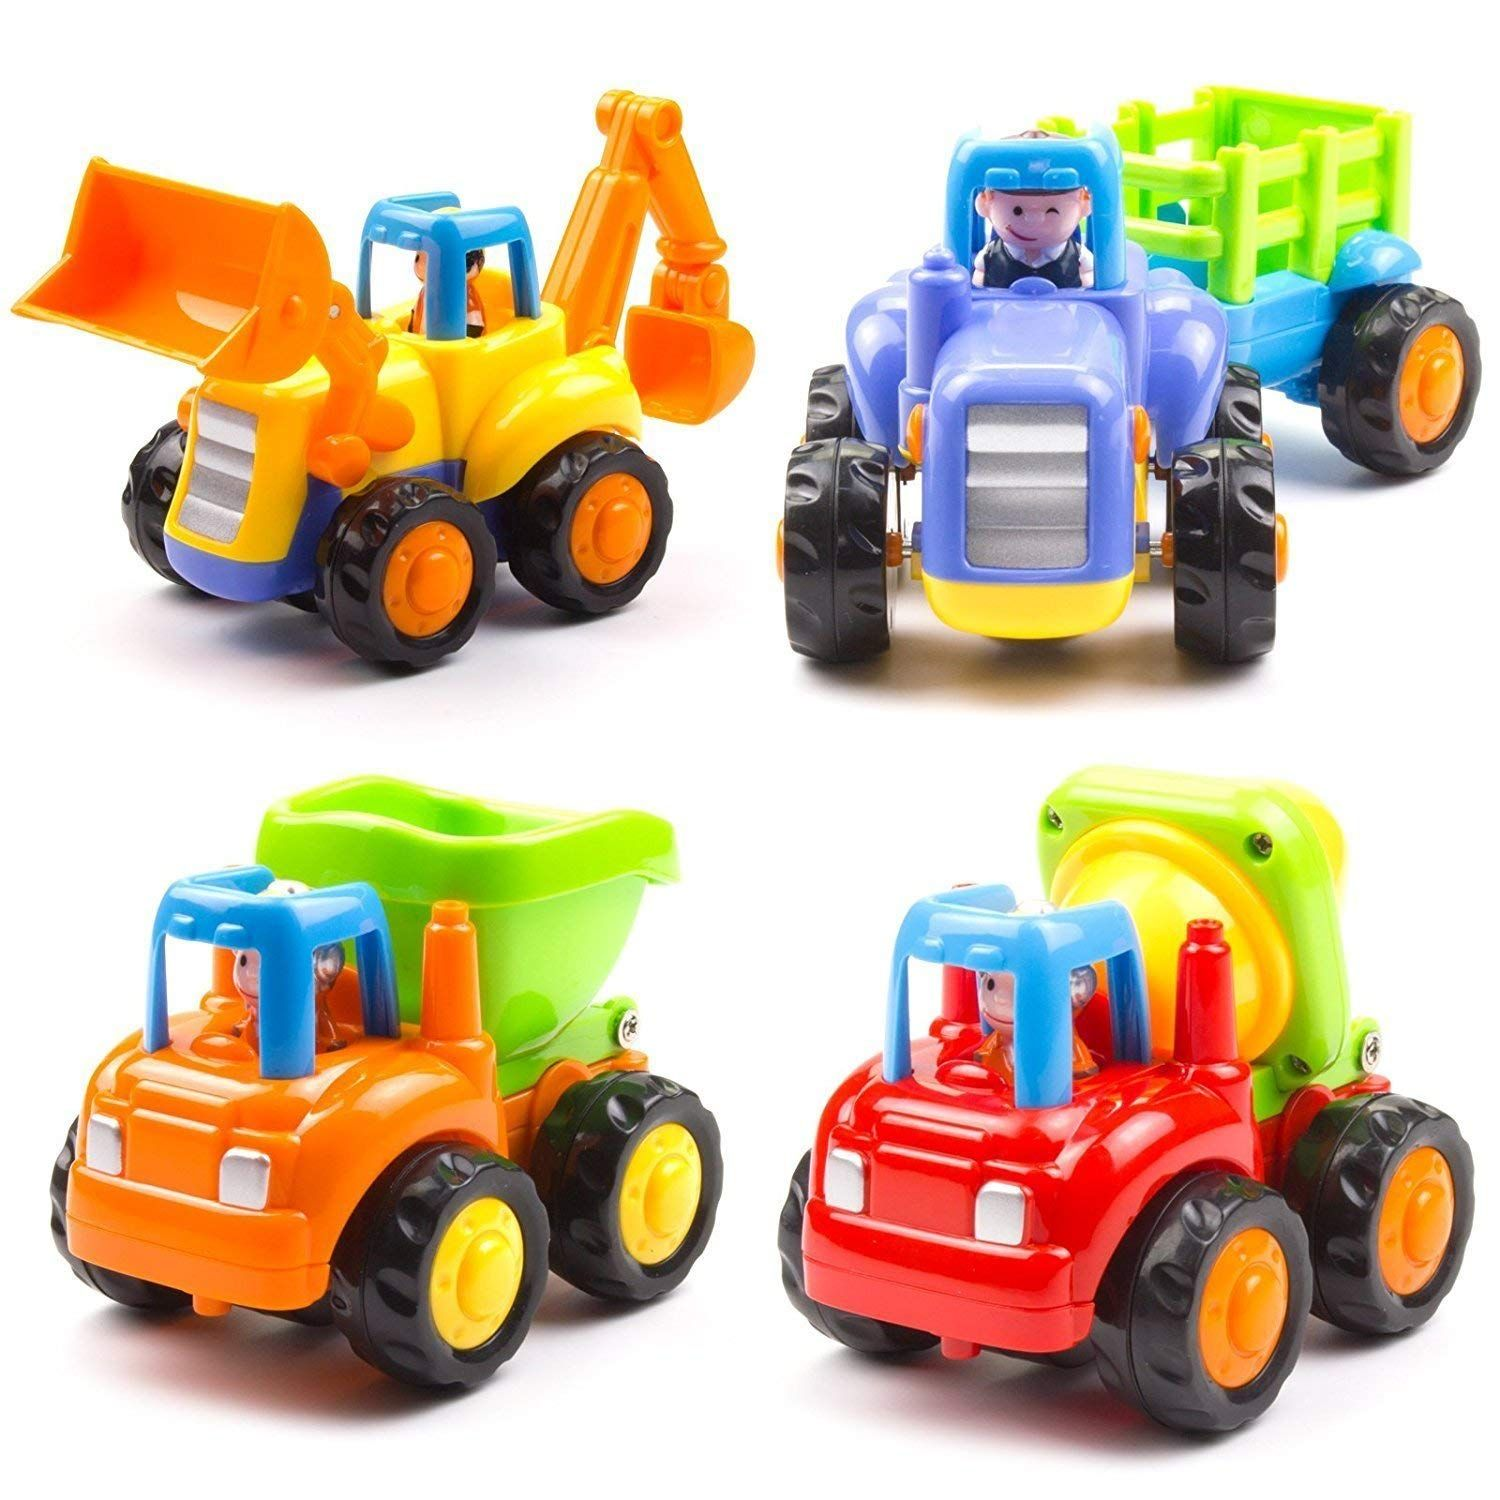 Toyshine Sunshine Unbreakable Automobile Car Toy Set Toy Car Kids Gift Sets Baby Toddler Toys